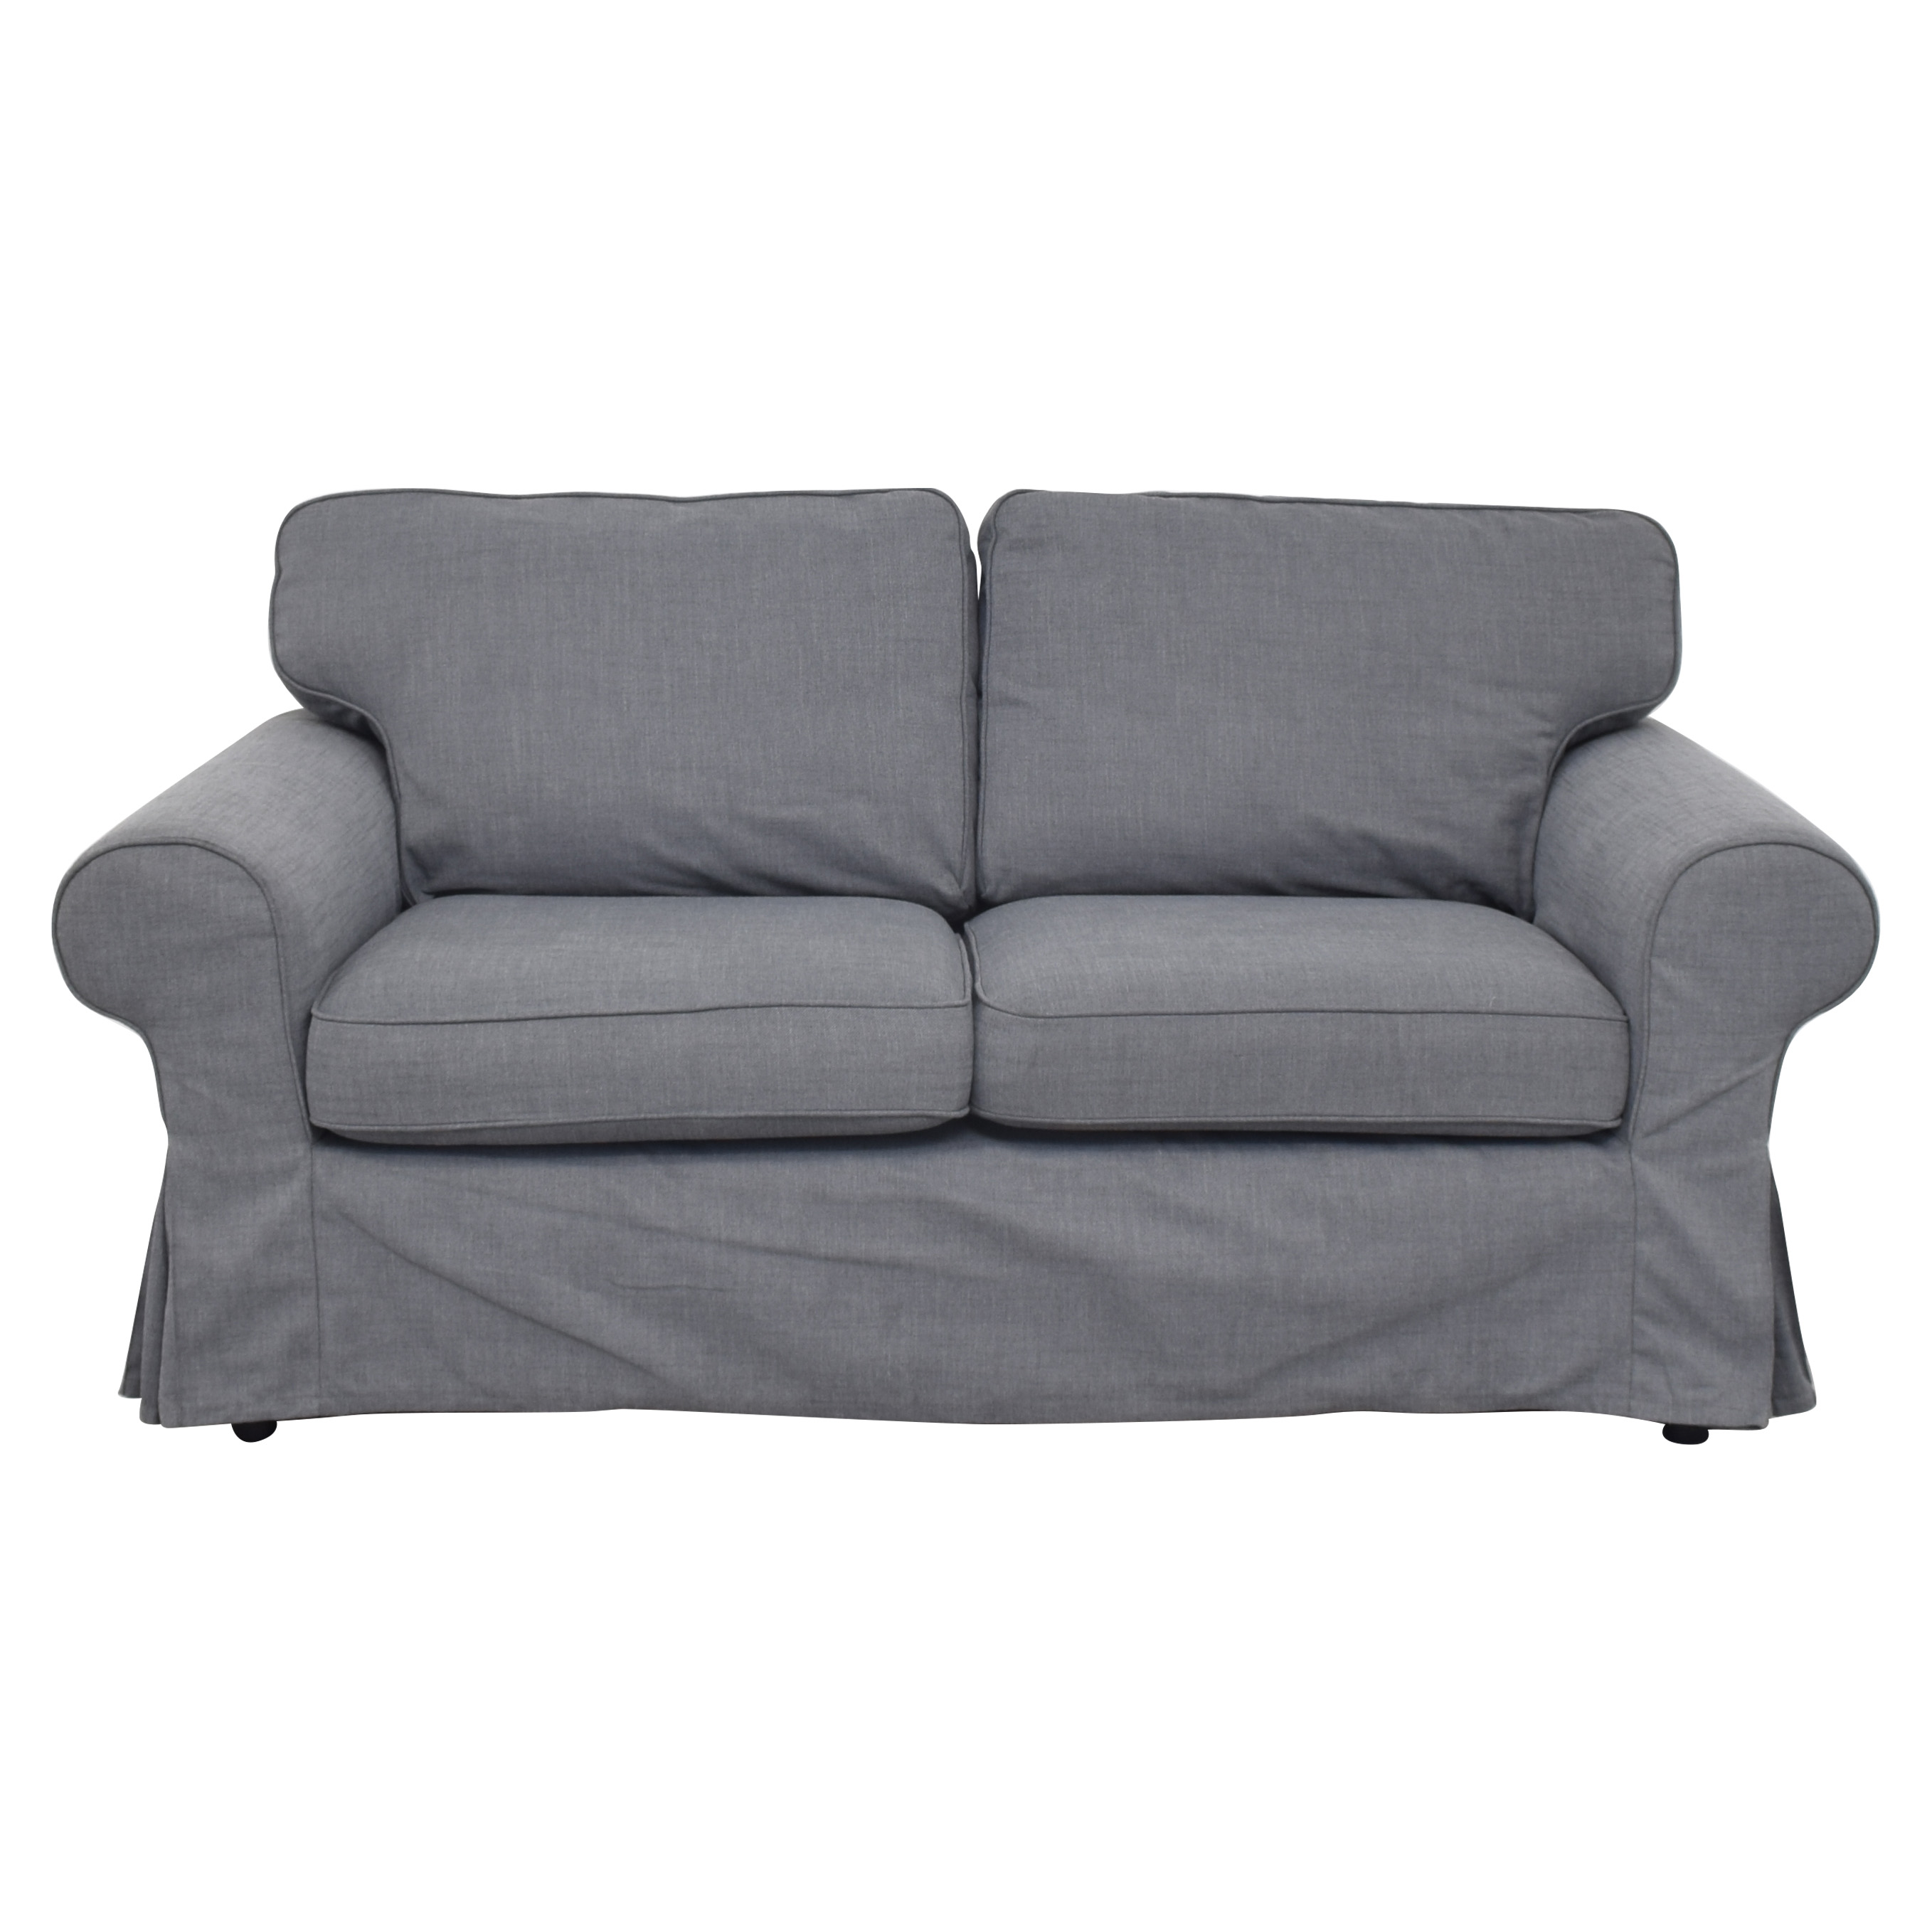 IKEA Ikea Ektorp Loveseat used